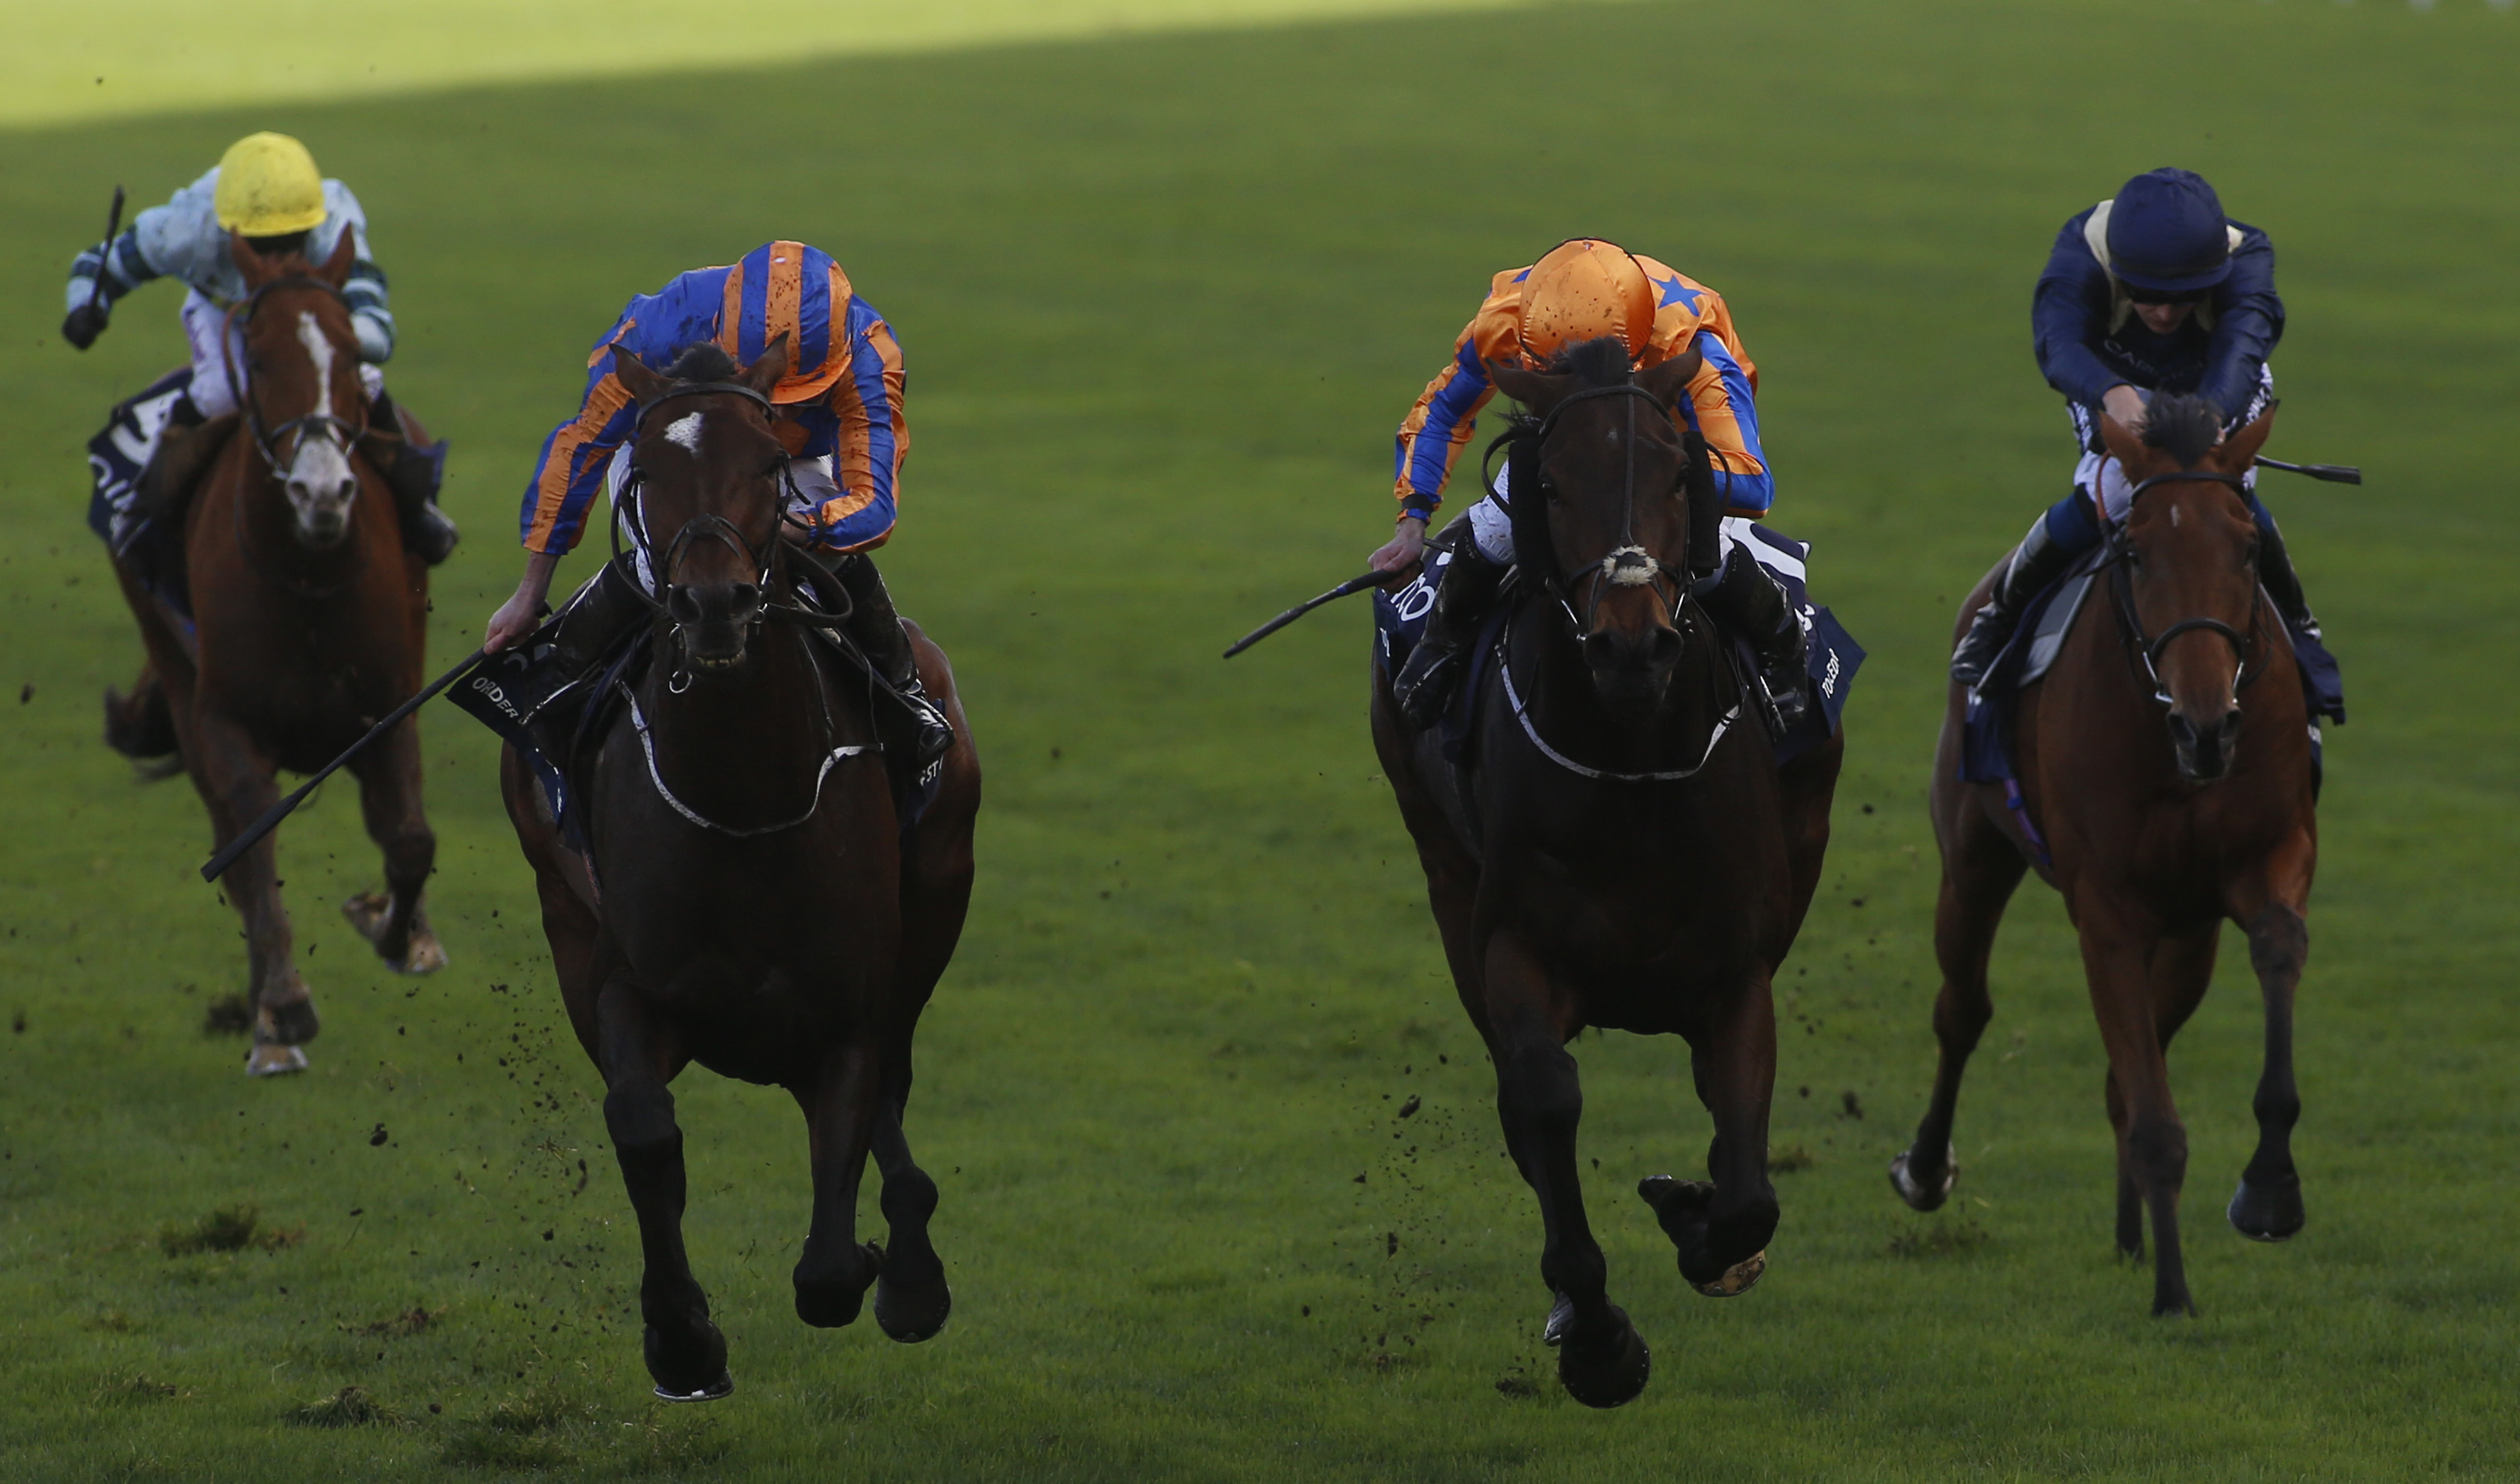 Order of St George (left) narrowly beats Torcedor (centre) on Champions Day at Ascot last season